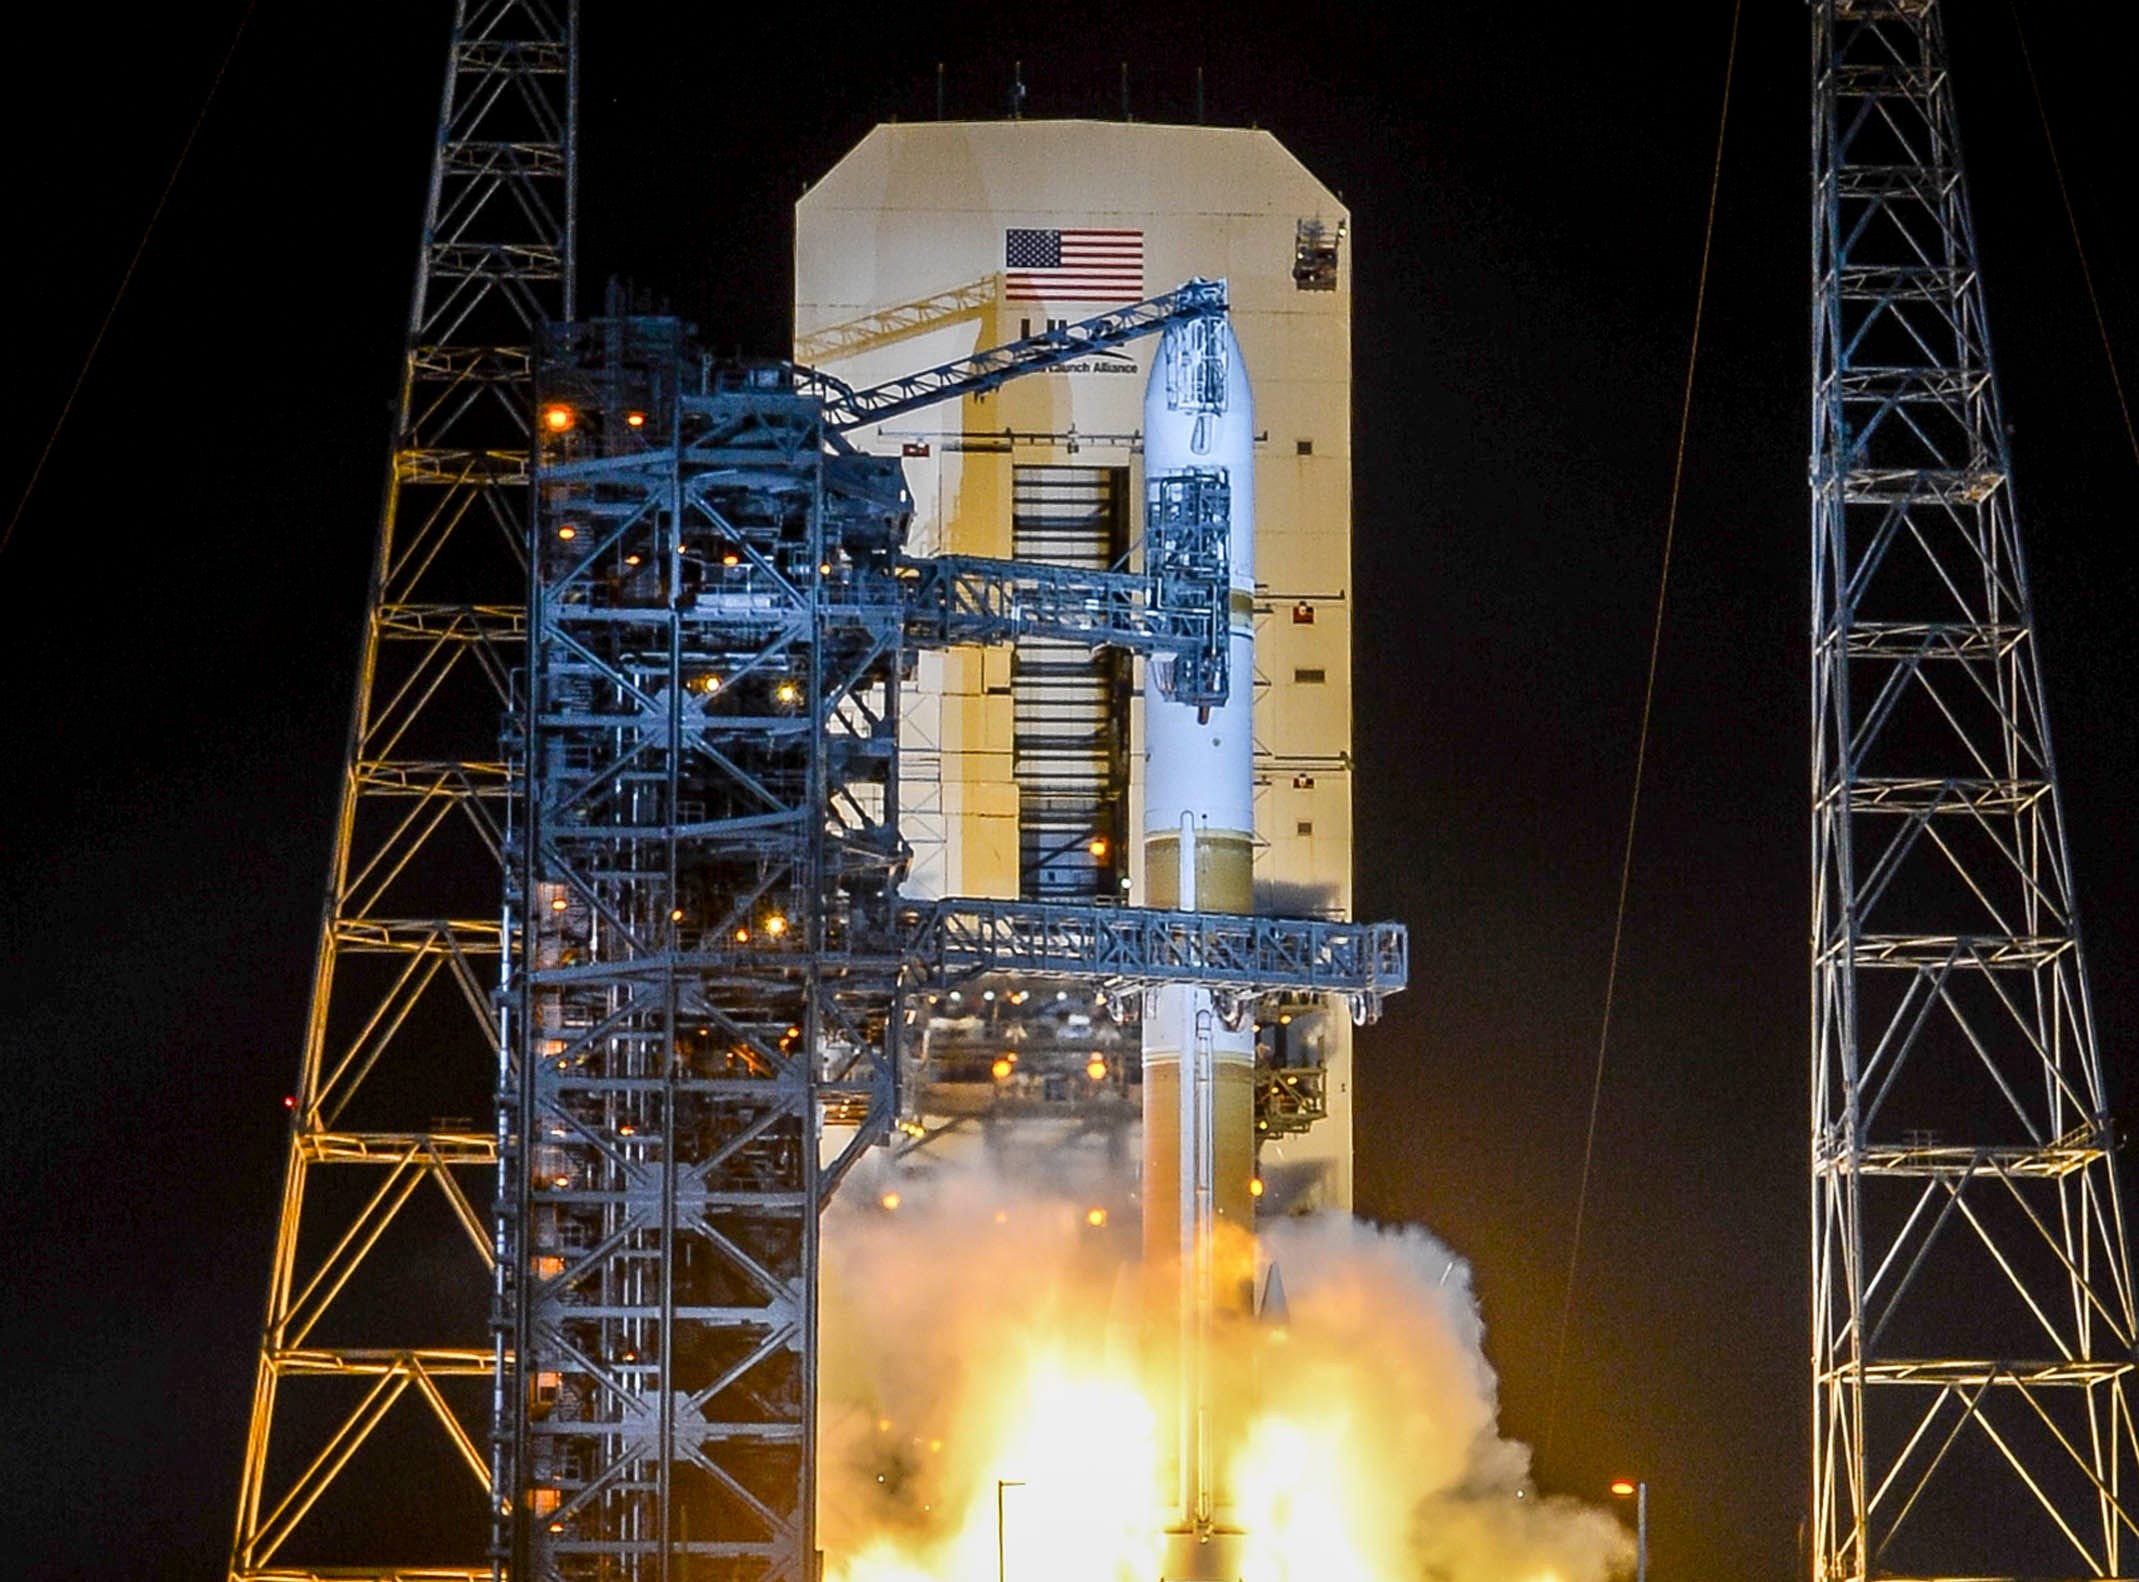 A United Launch Alliance Delta IV Medium rocket lifts off from Cape Canaveral Air Force Station Friday, March 15, 2019. The rocket is carrying a communications satellite for the US Military.